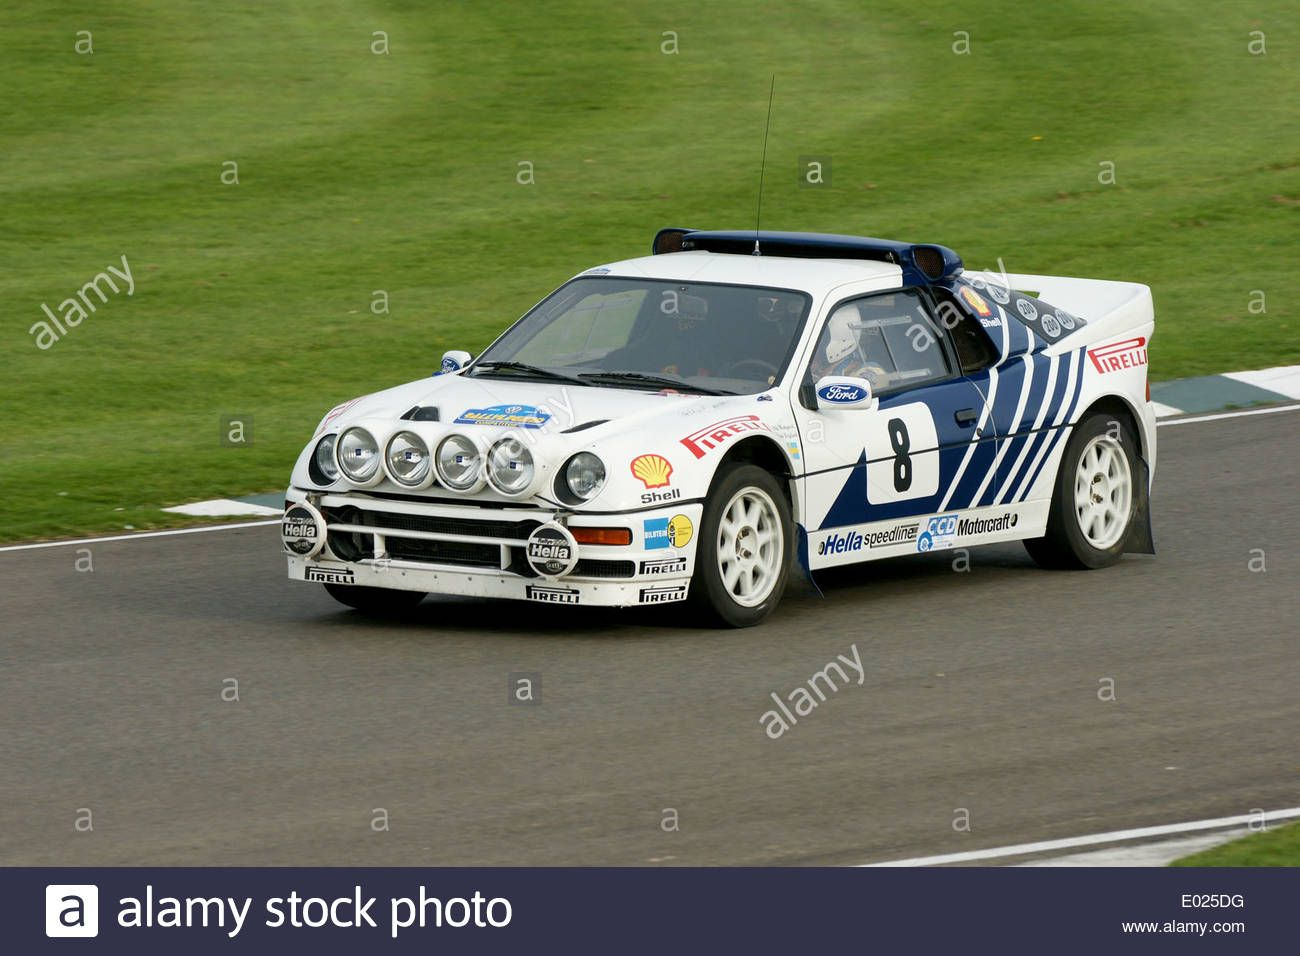 Download This Stock Image Ford Rs 200 E025dg From Alamy 39 S